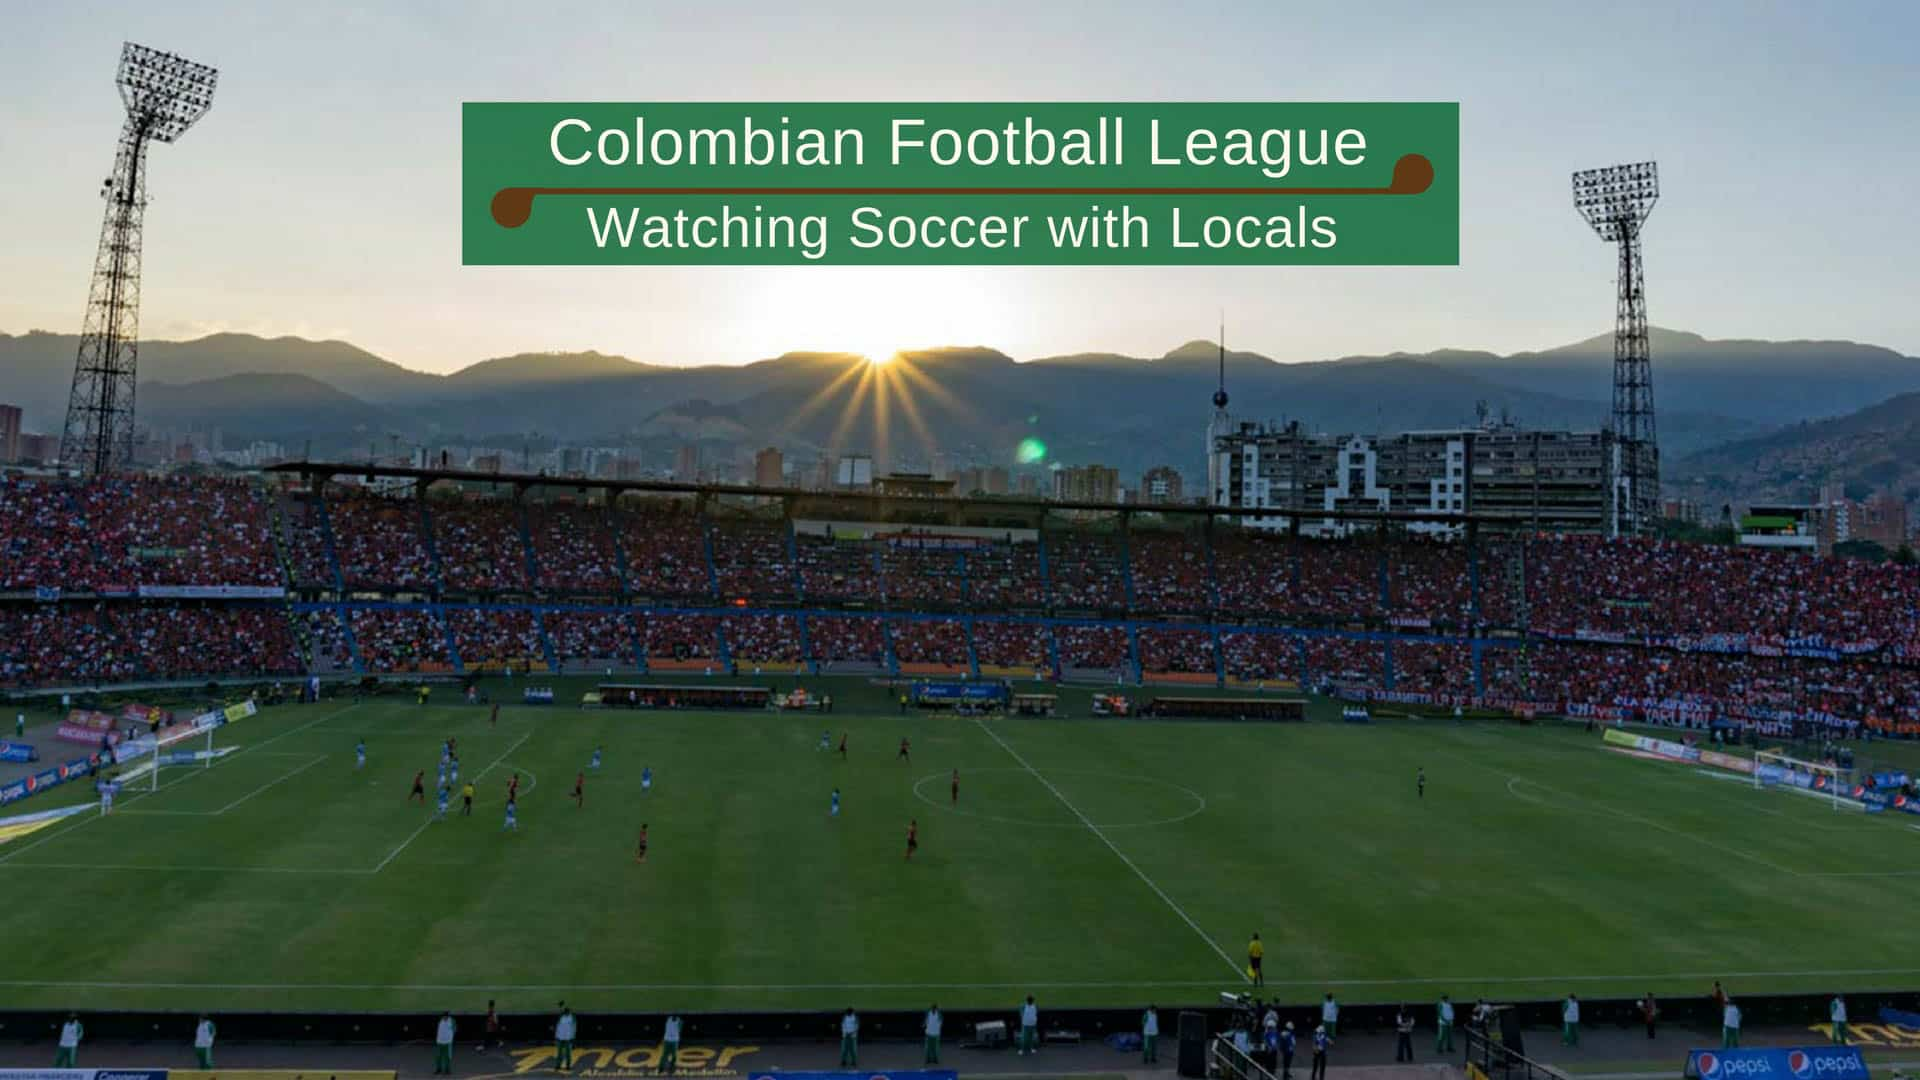 Colombian Football League